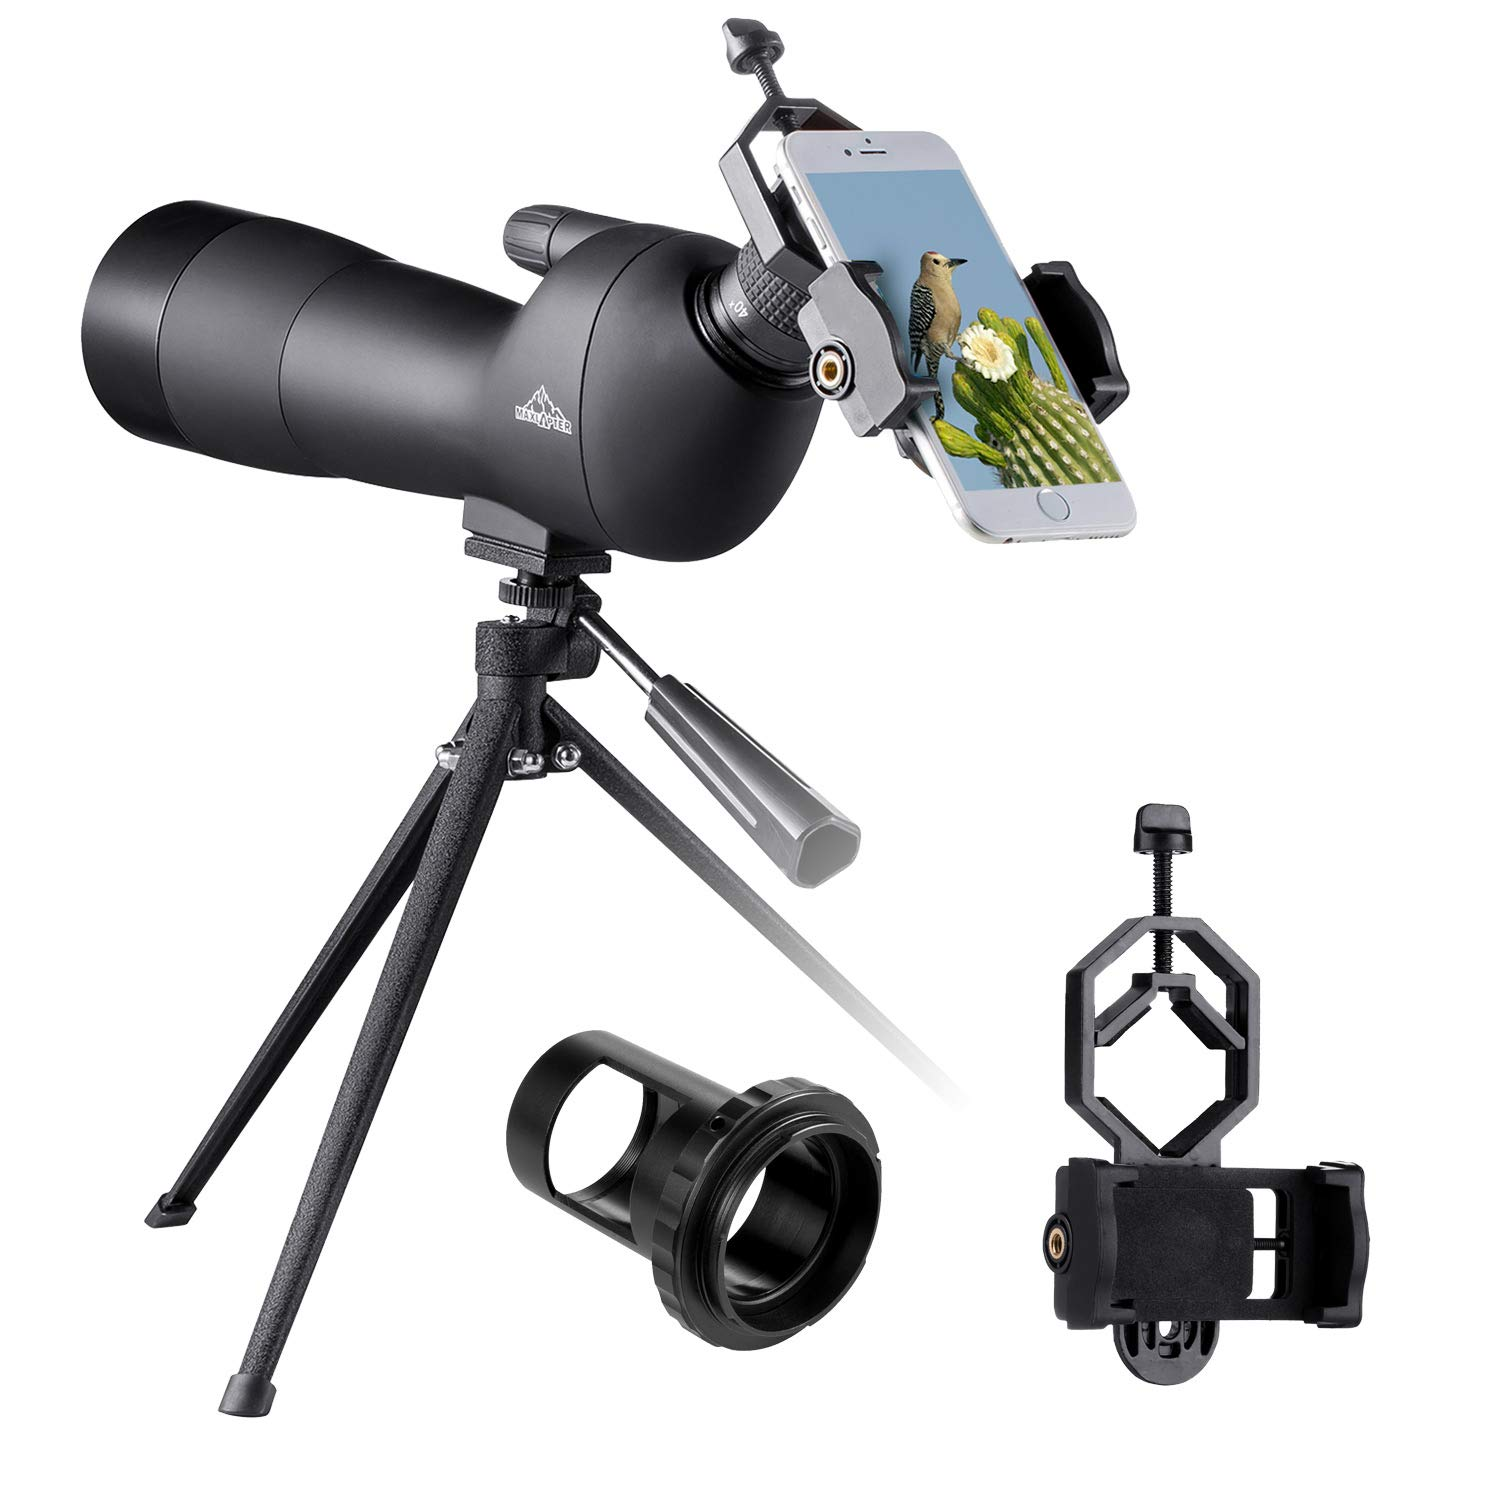 BEBANG 20-60x60 Spotting Scope for Bird Watching, Waterproof Zoom Scope with High Definition, FMC Coated Optical Lens, for Target Shooting, with a Tripod, Smartphone Adapter, Canon Camera Adapter by BEBANG